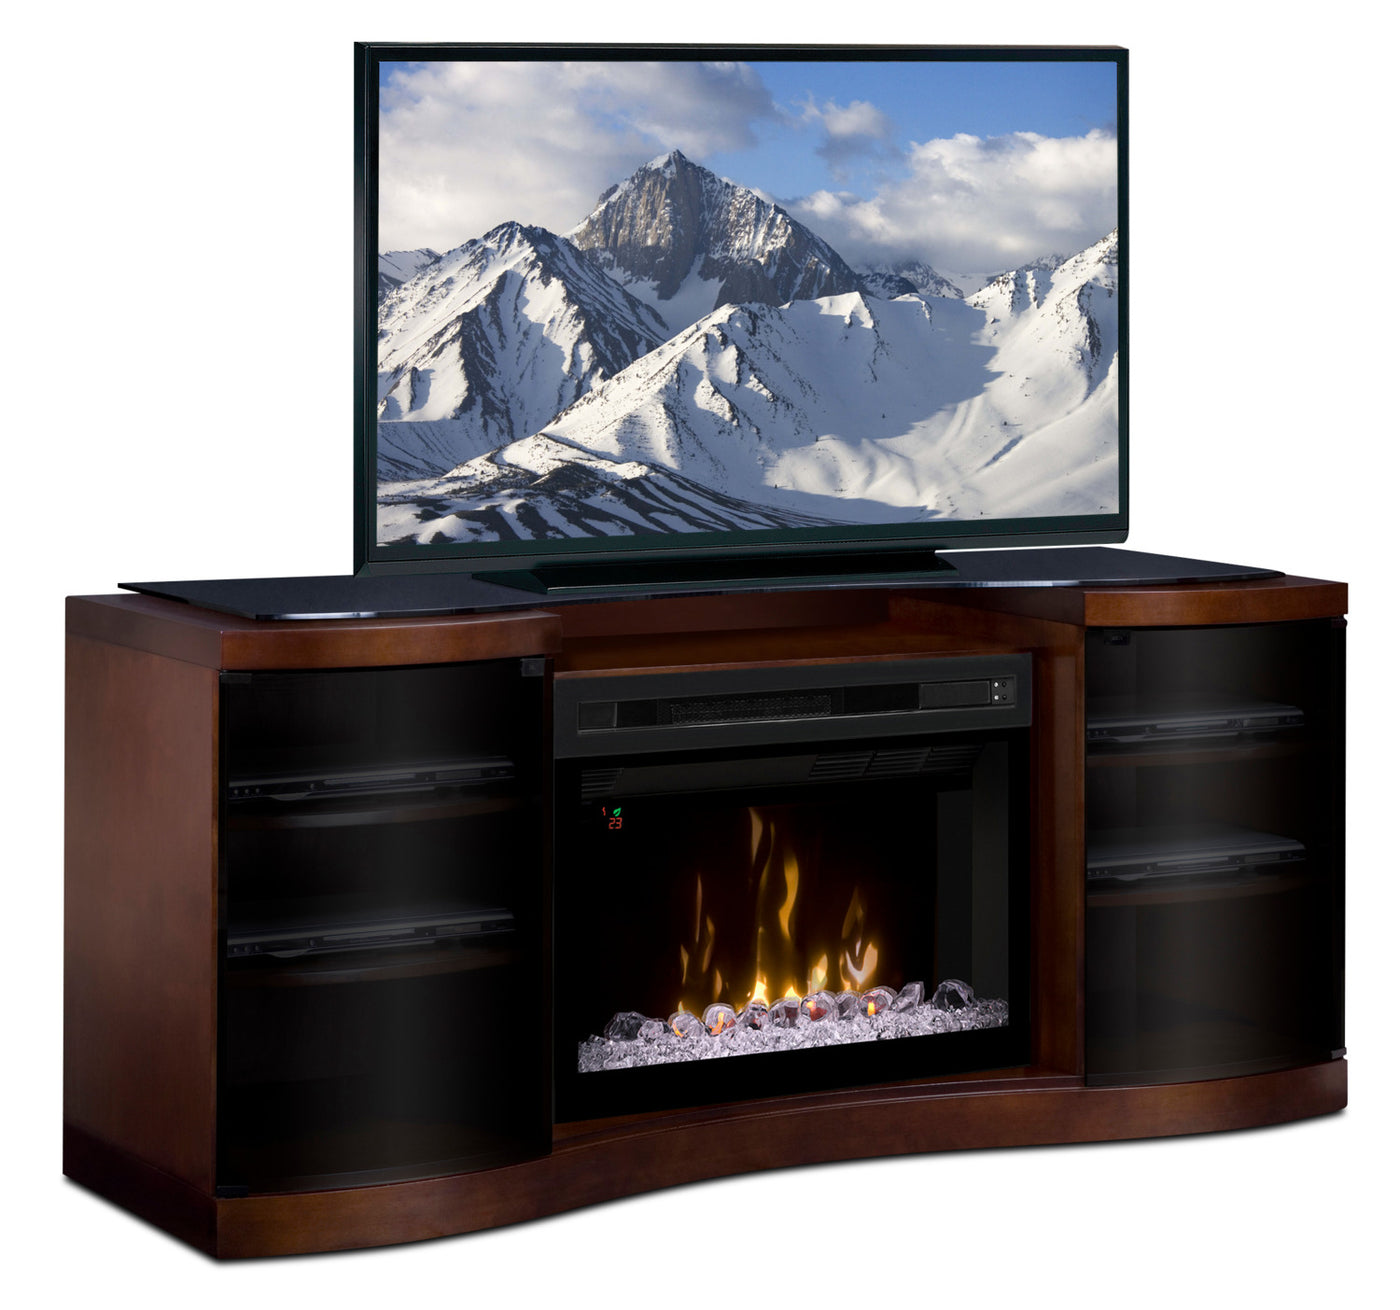 Grandview 73 Tv Stand With Glass Ember Firebox The Brick Old Fuse Boxes Range Previous Next